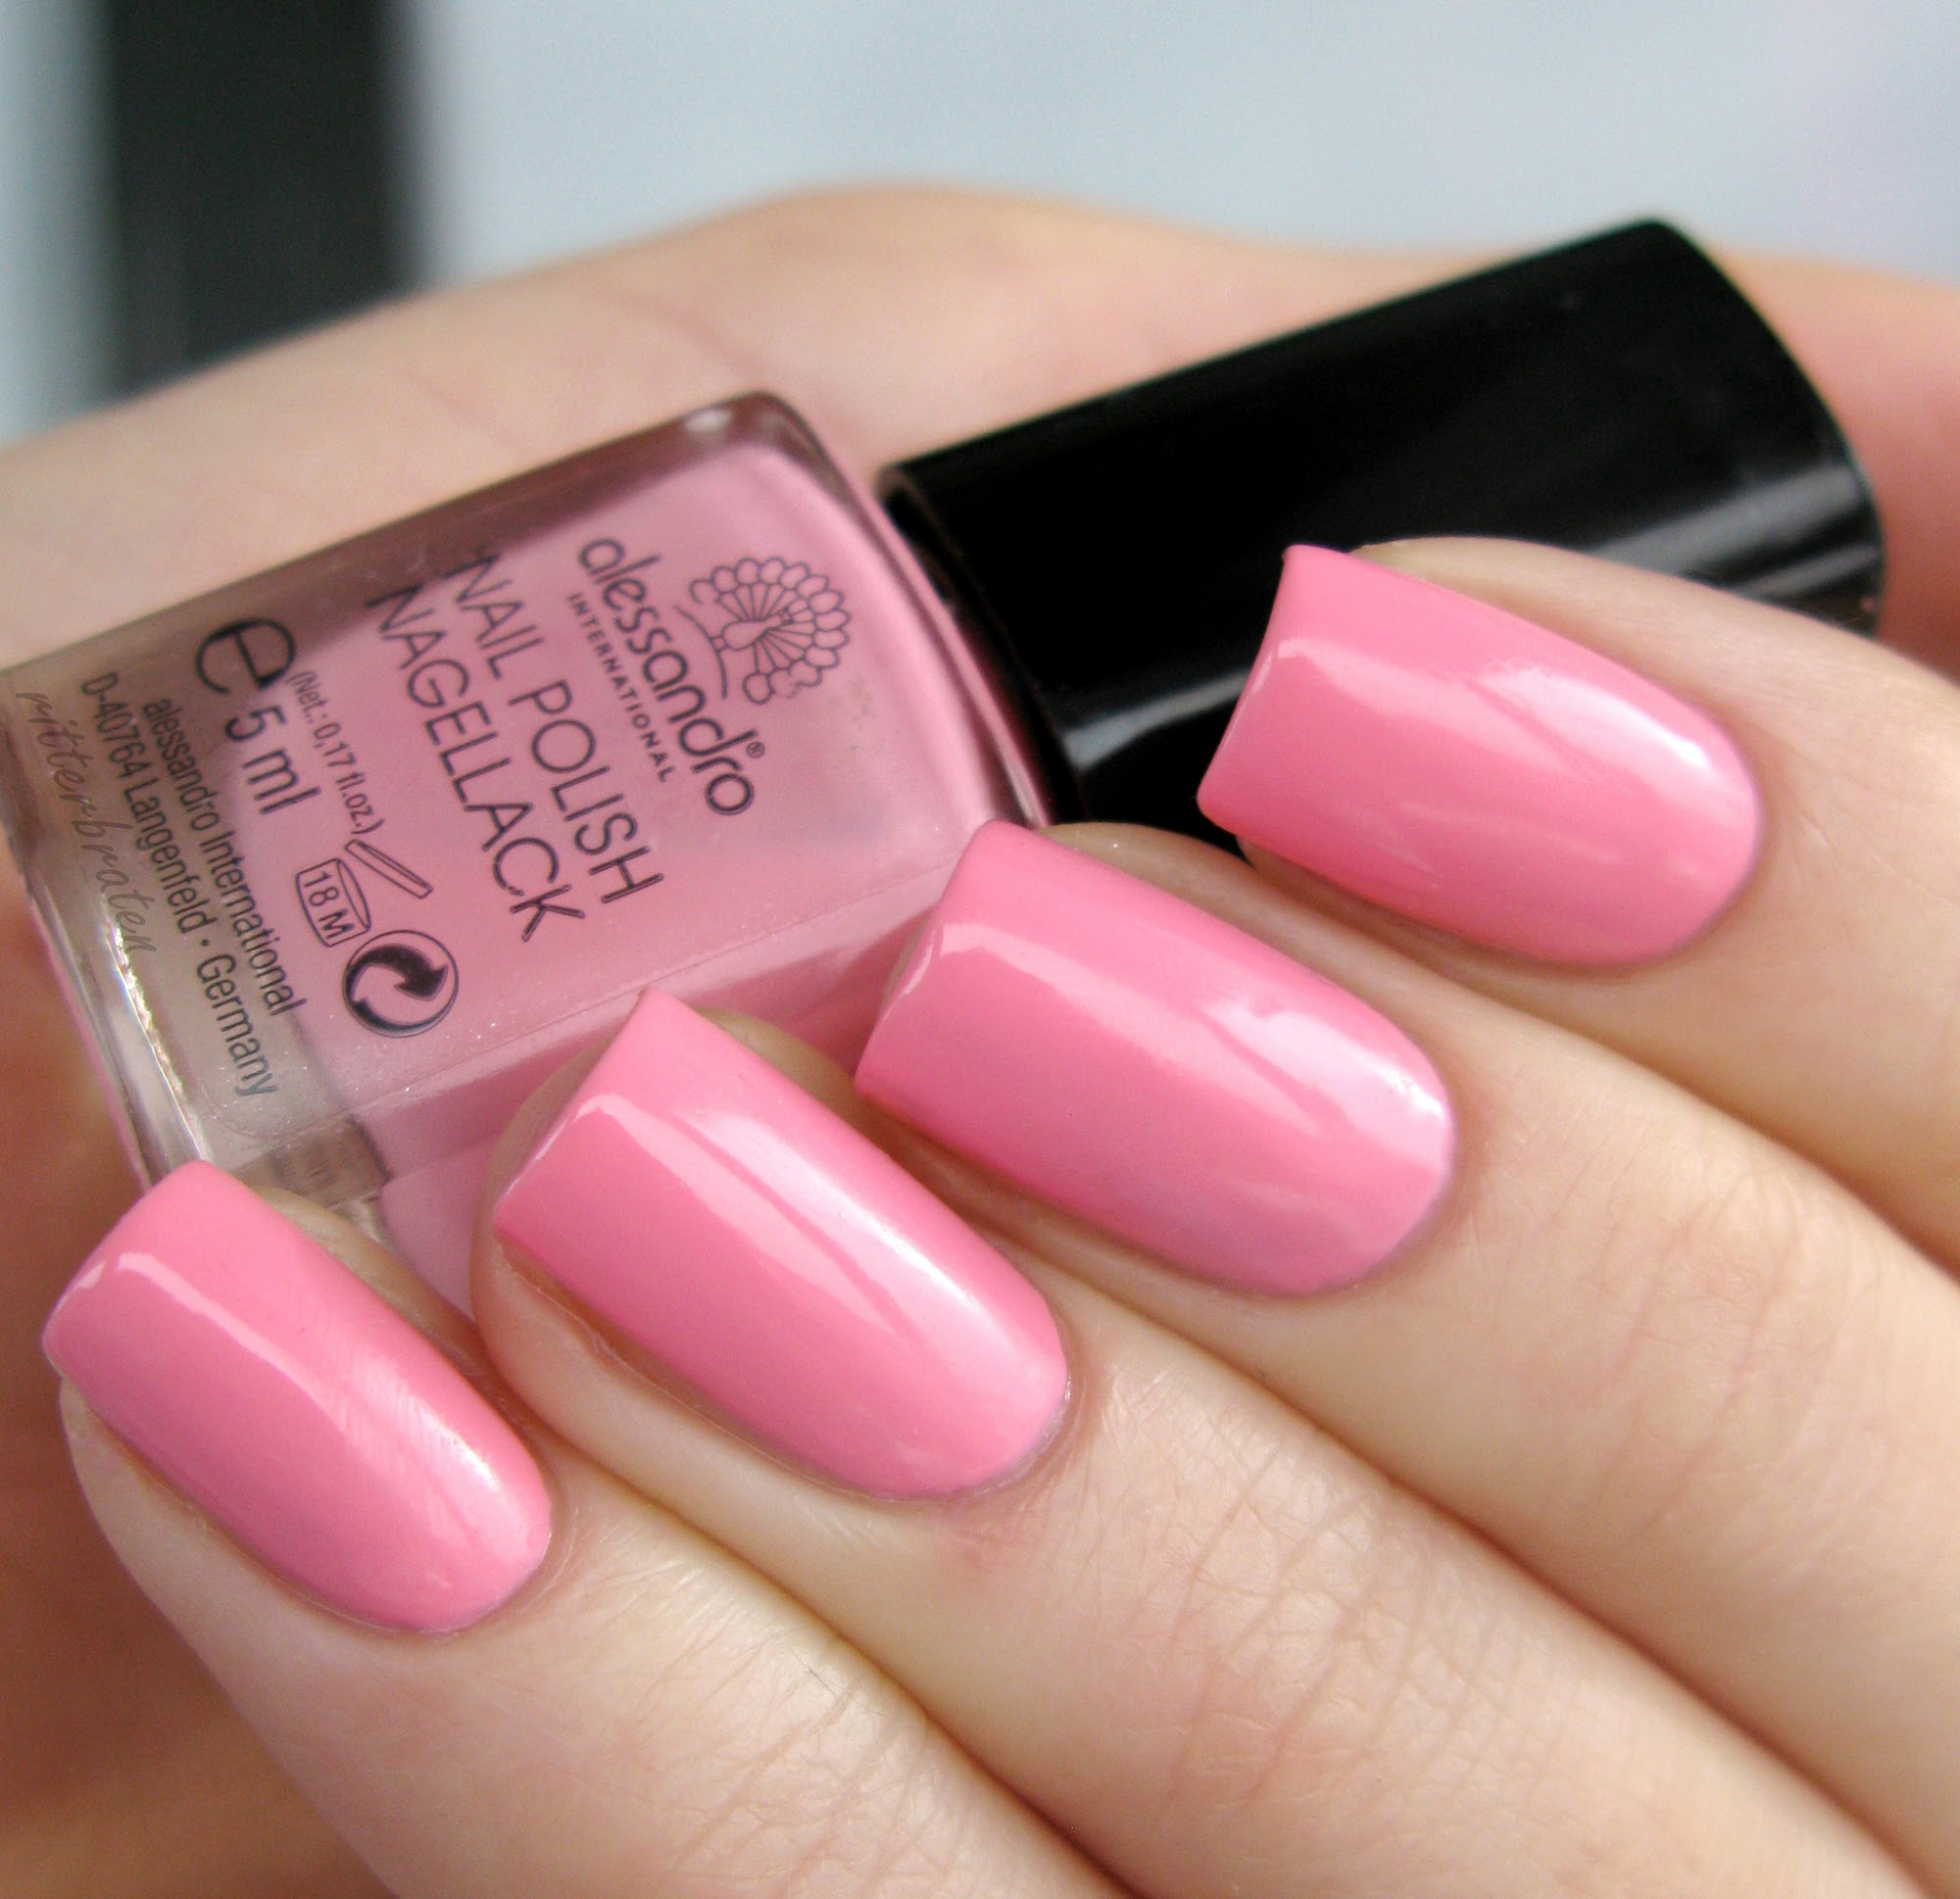 Alessandro Candy Floss Pink nagellack